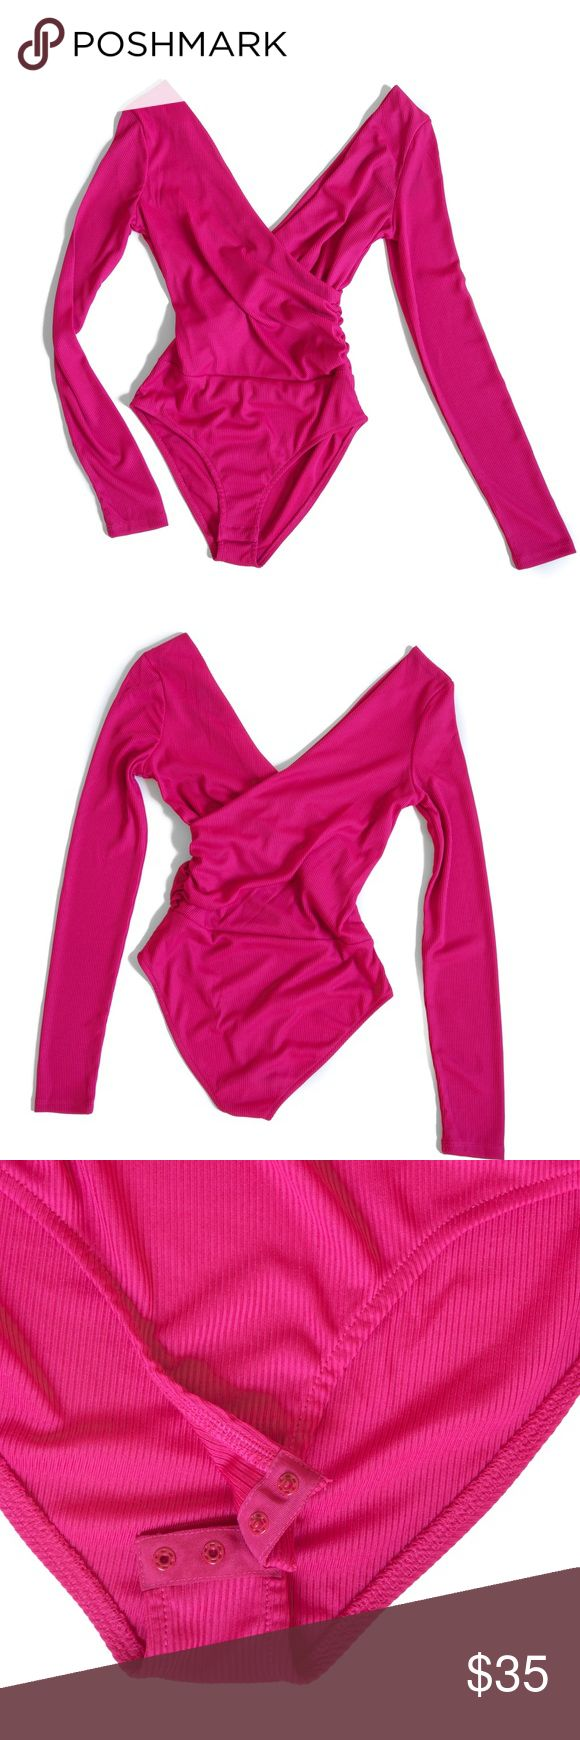 TopShop Ribbed Surplice Bodysuit -Magenta • Brand new with tags, originally $38  • A plunging surplice neckline defines a long-sleeve bodysuit in an ultra-stretchy ribbed knit for a flattering, no-slip base layer.  • Surplice V-neck • Long sleeves • Fabric Content: 95% polyester, 5% elastane • Machine wash cold, dry flat • Color: Magenta (*photos reflect slight variations in color due to different lighting) • Snap closure on bottom, seam at waist, would look best outfitted with high-waisted…